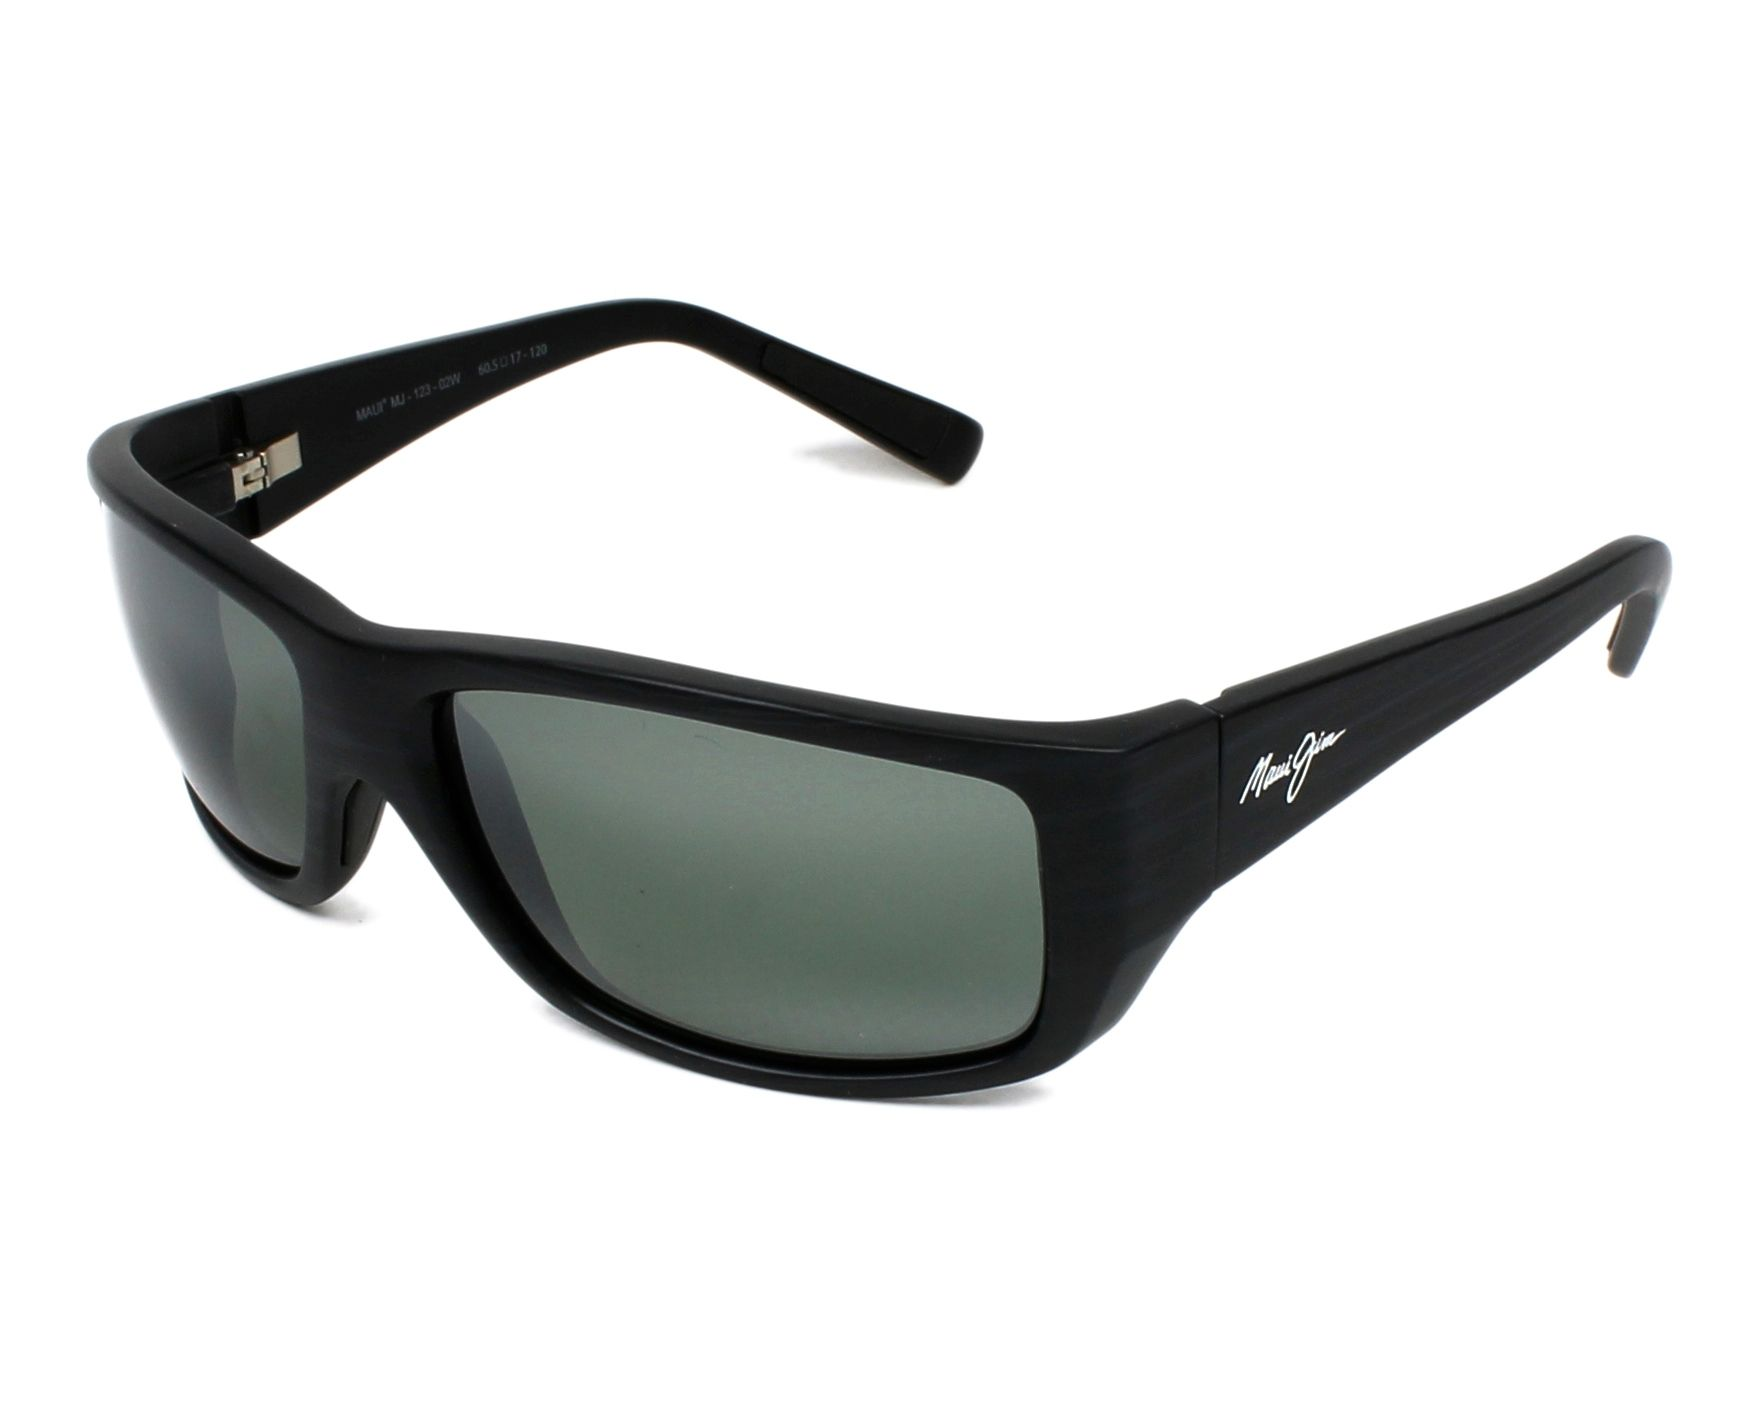 2c6cf6d7e72b0 Sunglasses Maui Jim 123 02W 60-17 Black profile view